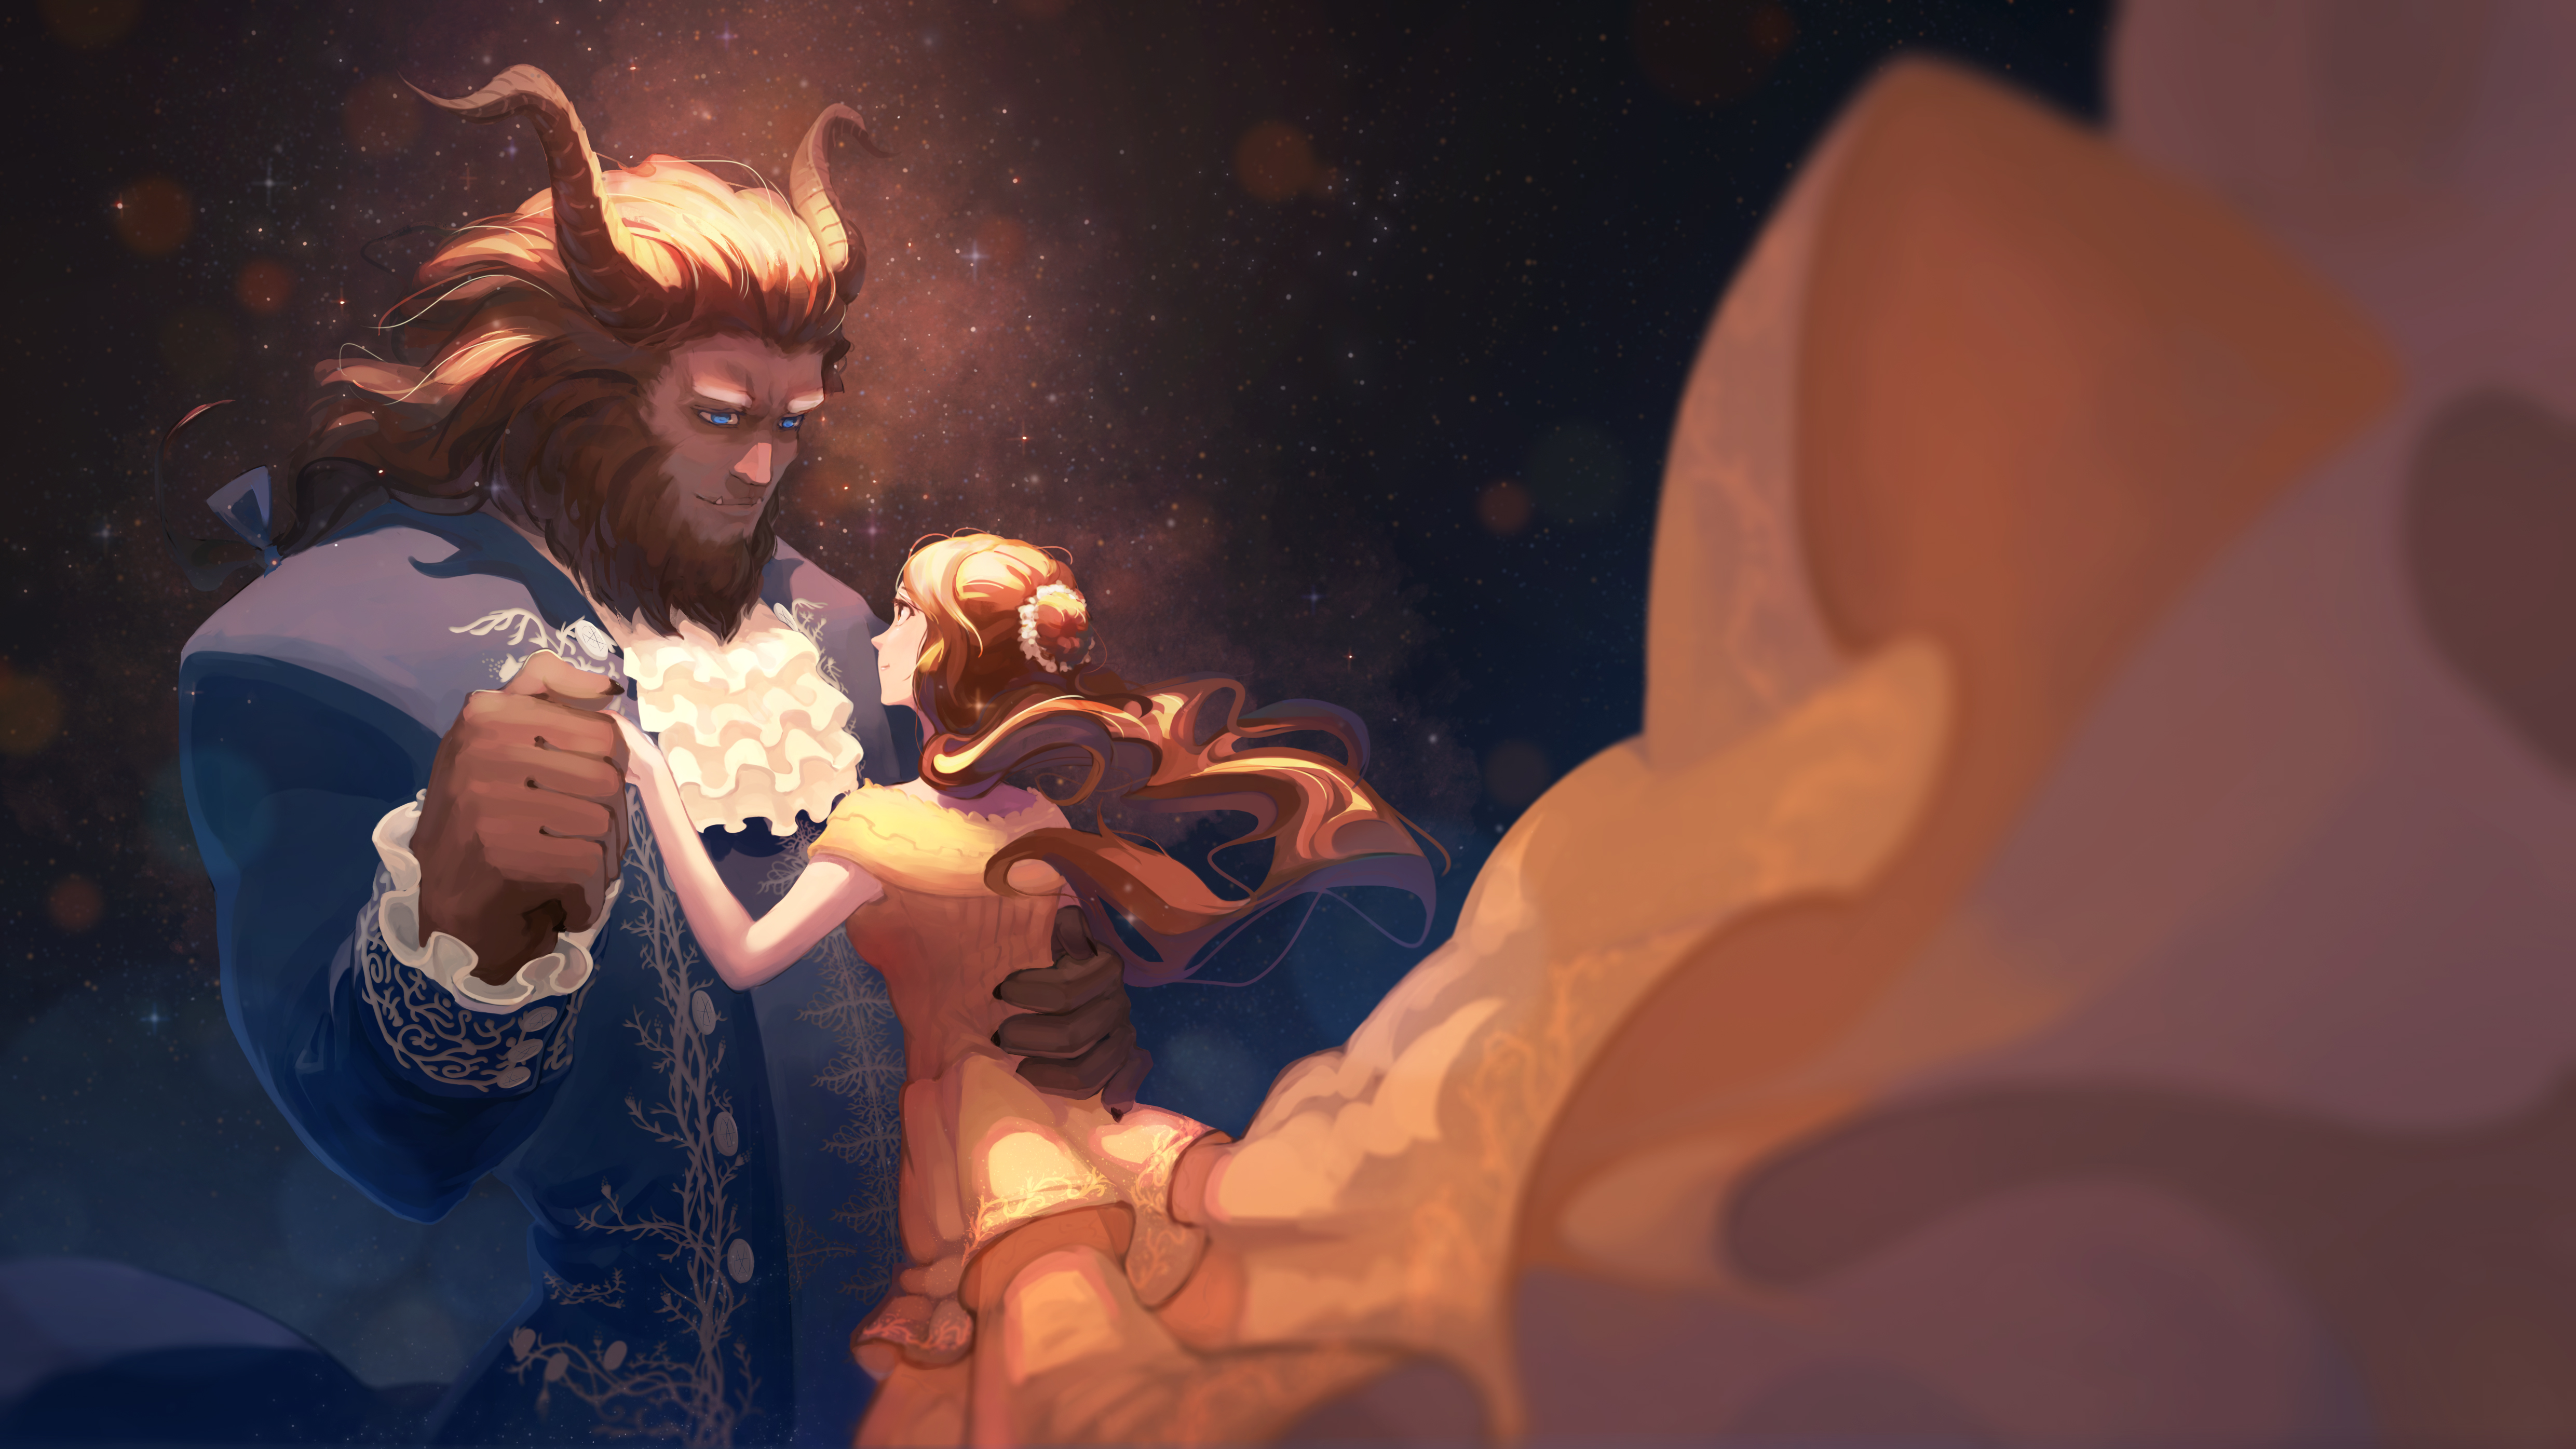 Beauty And The Beast Disney Wallpaper 2104063 Zerochan Anime